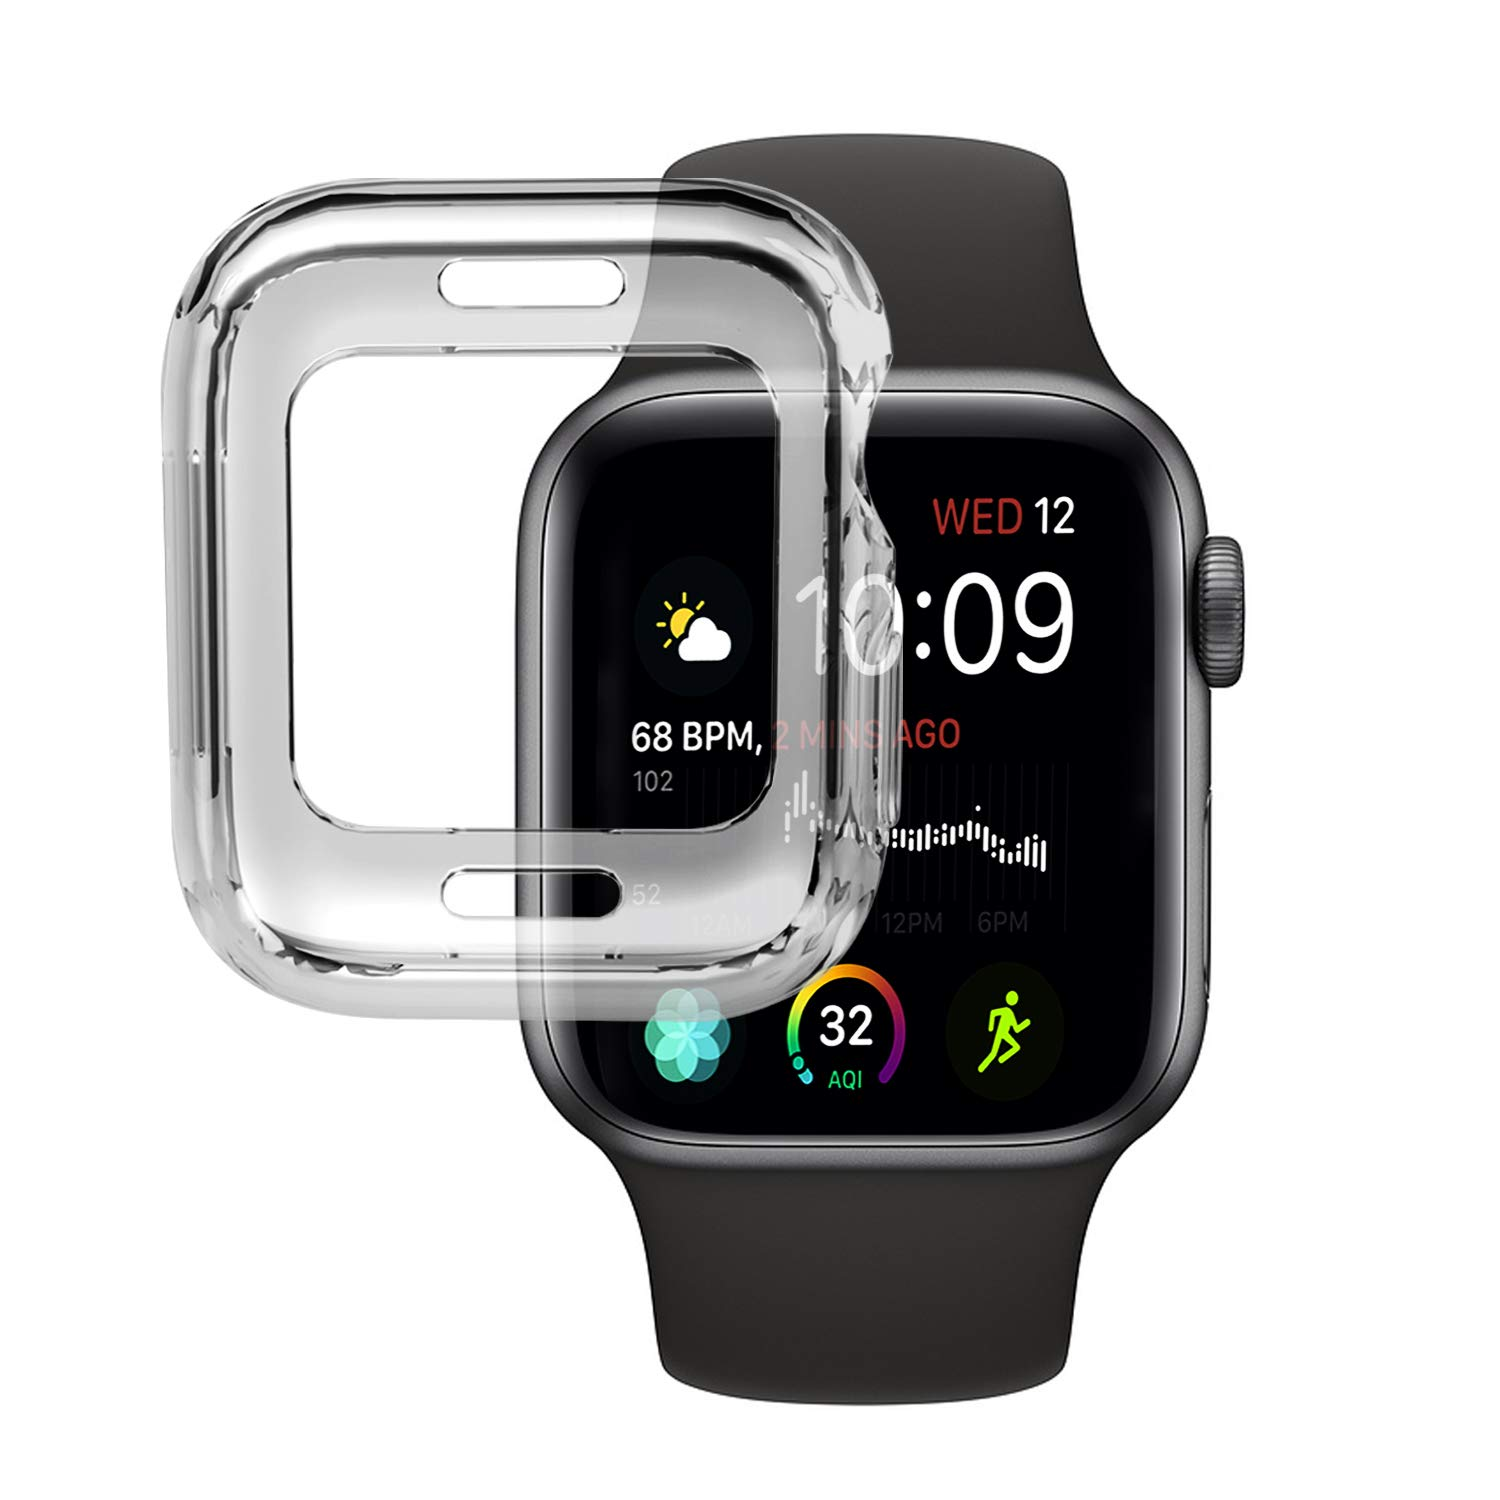 VODKE Compatible with Apple Watch Case Series 4 44mm, Soft TPU Watch Bumper Case Cover Protector Compatible with iWatch Series 4 by VODKE (Image #1)